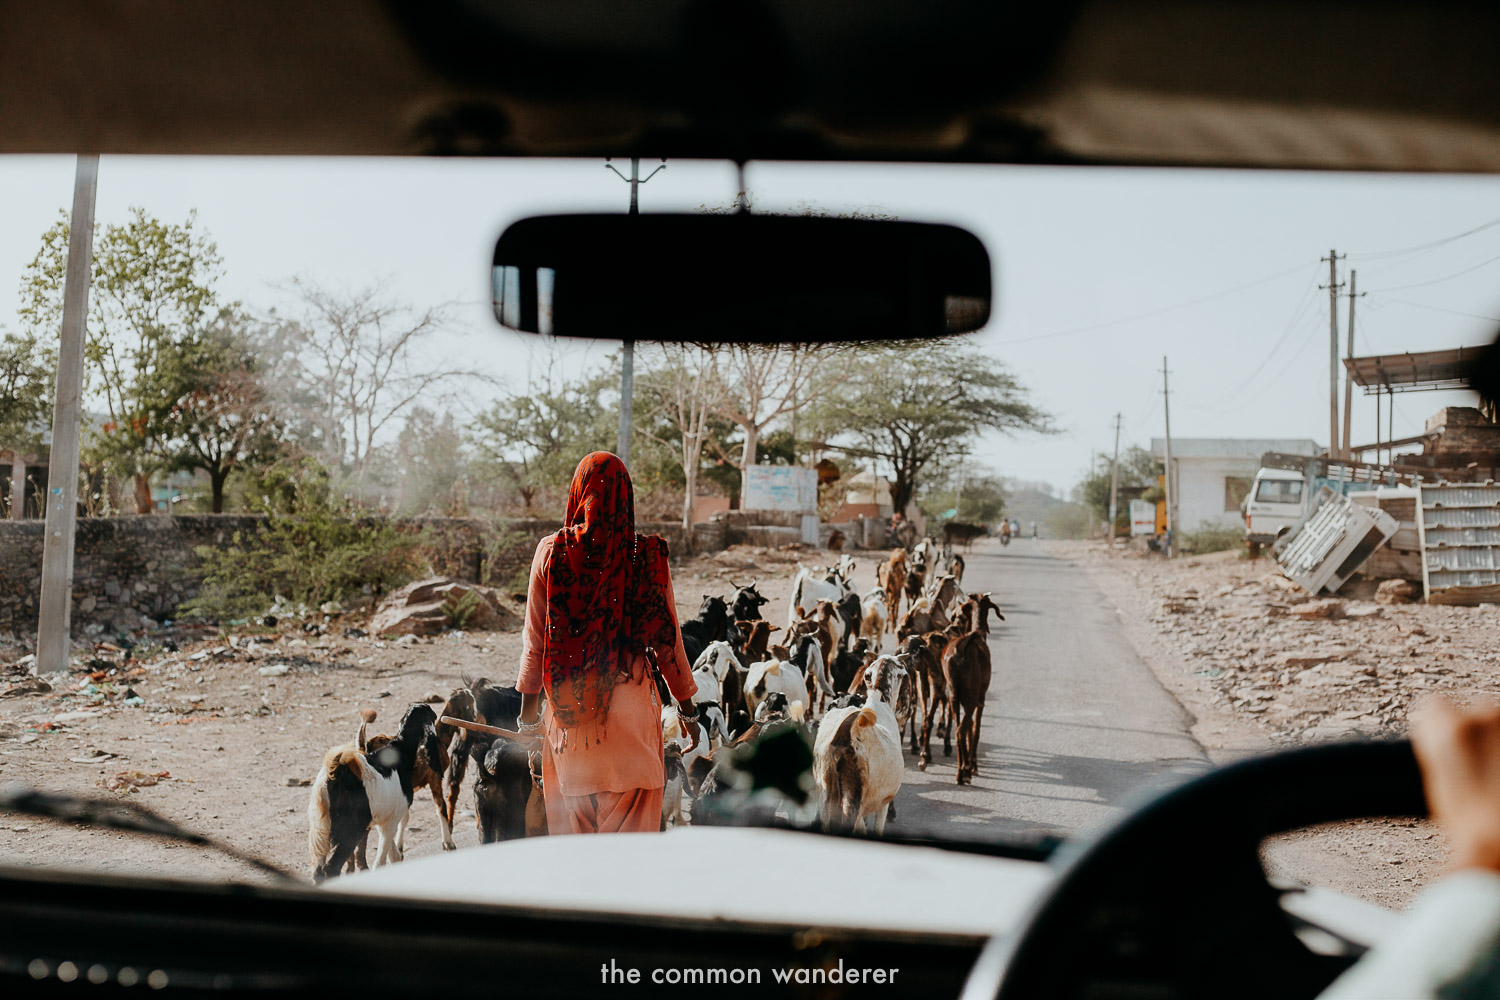 Driving into the town of Bundi, Rajasthan